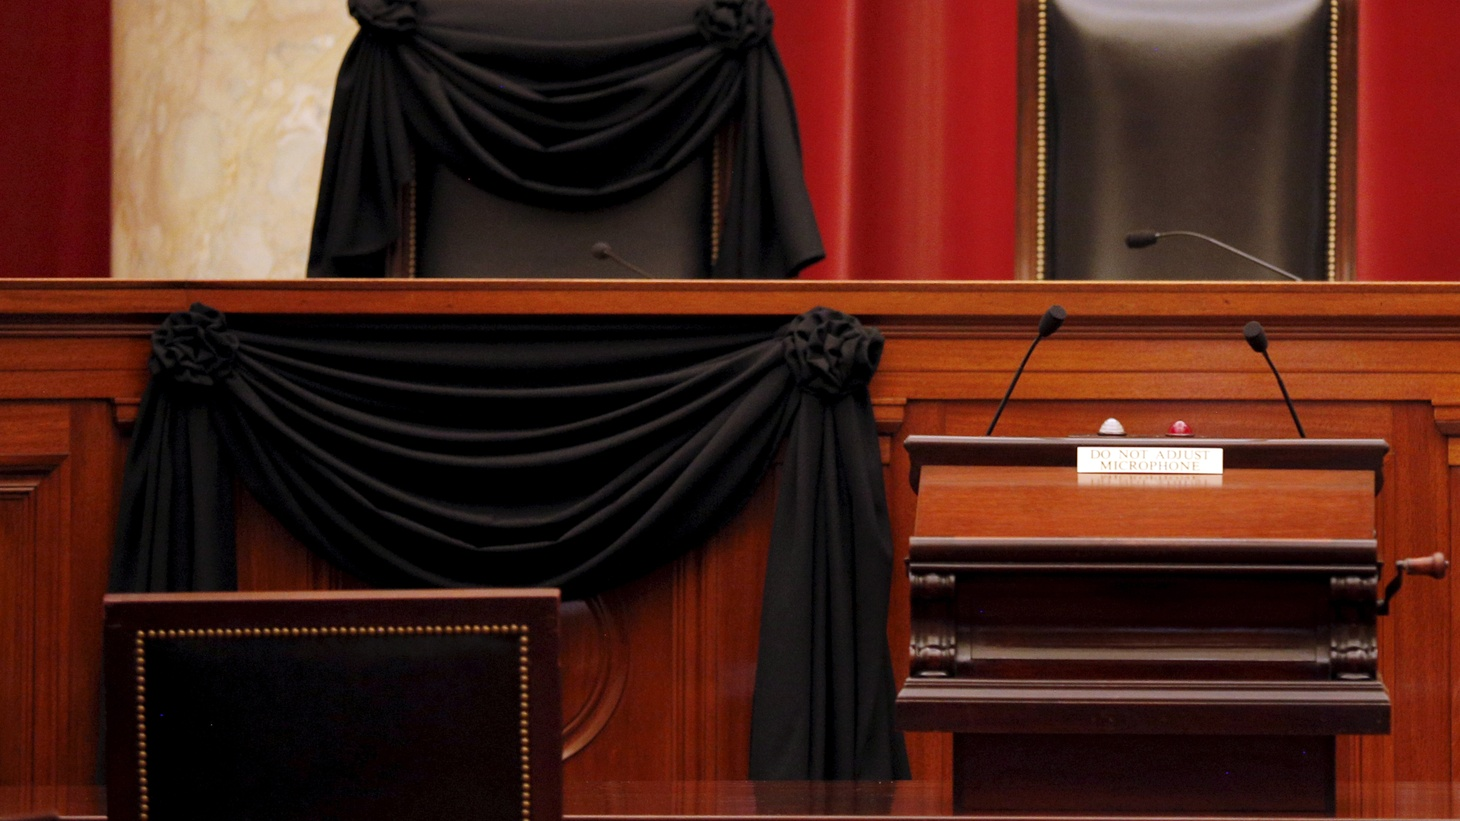 The death of Justice Antonin Scalia leaves the US Supreme Court equally divided, with the battle over his successor just beginning. We hear what's at stake for court cases currently pending, the presidential campaign and the future of America's Third Branch of Government.